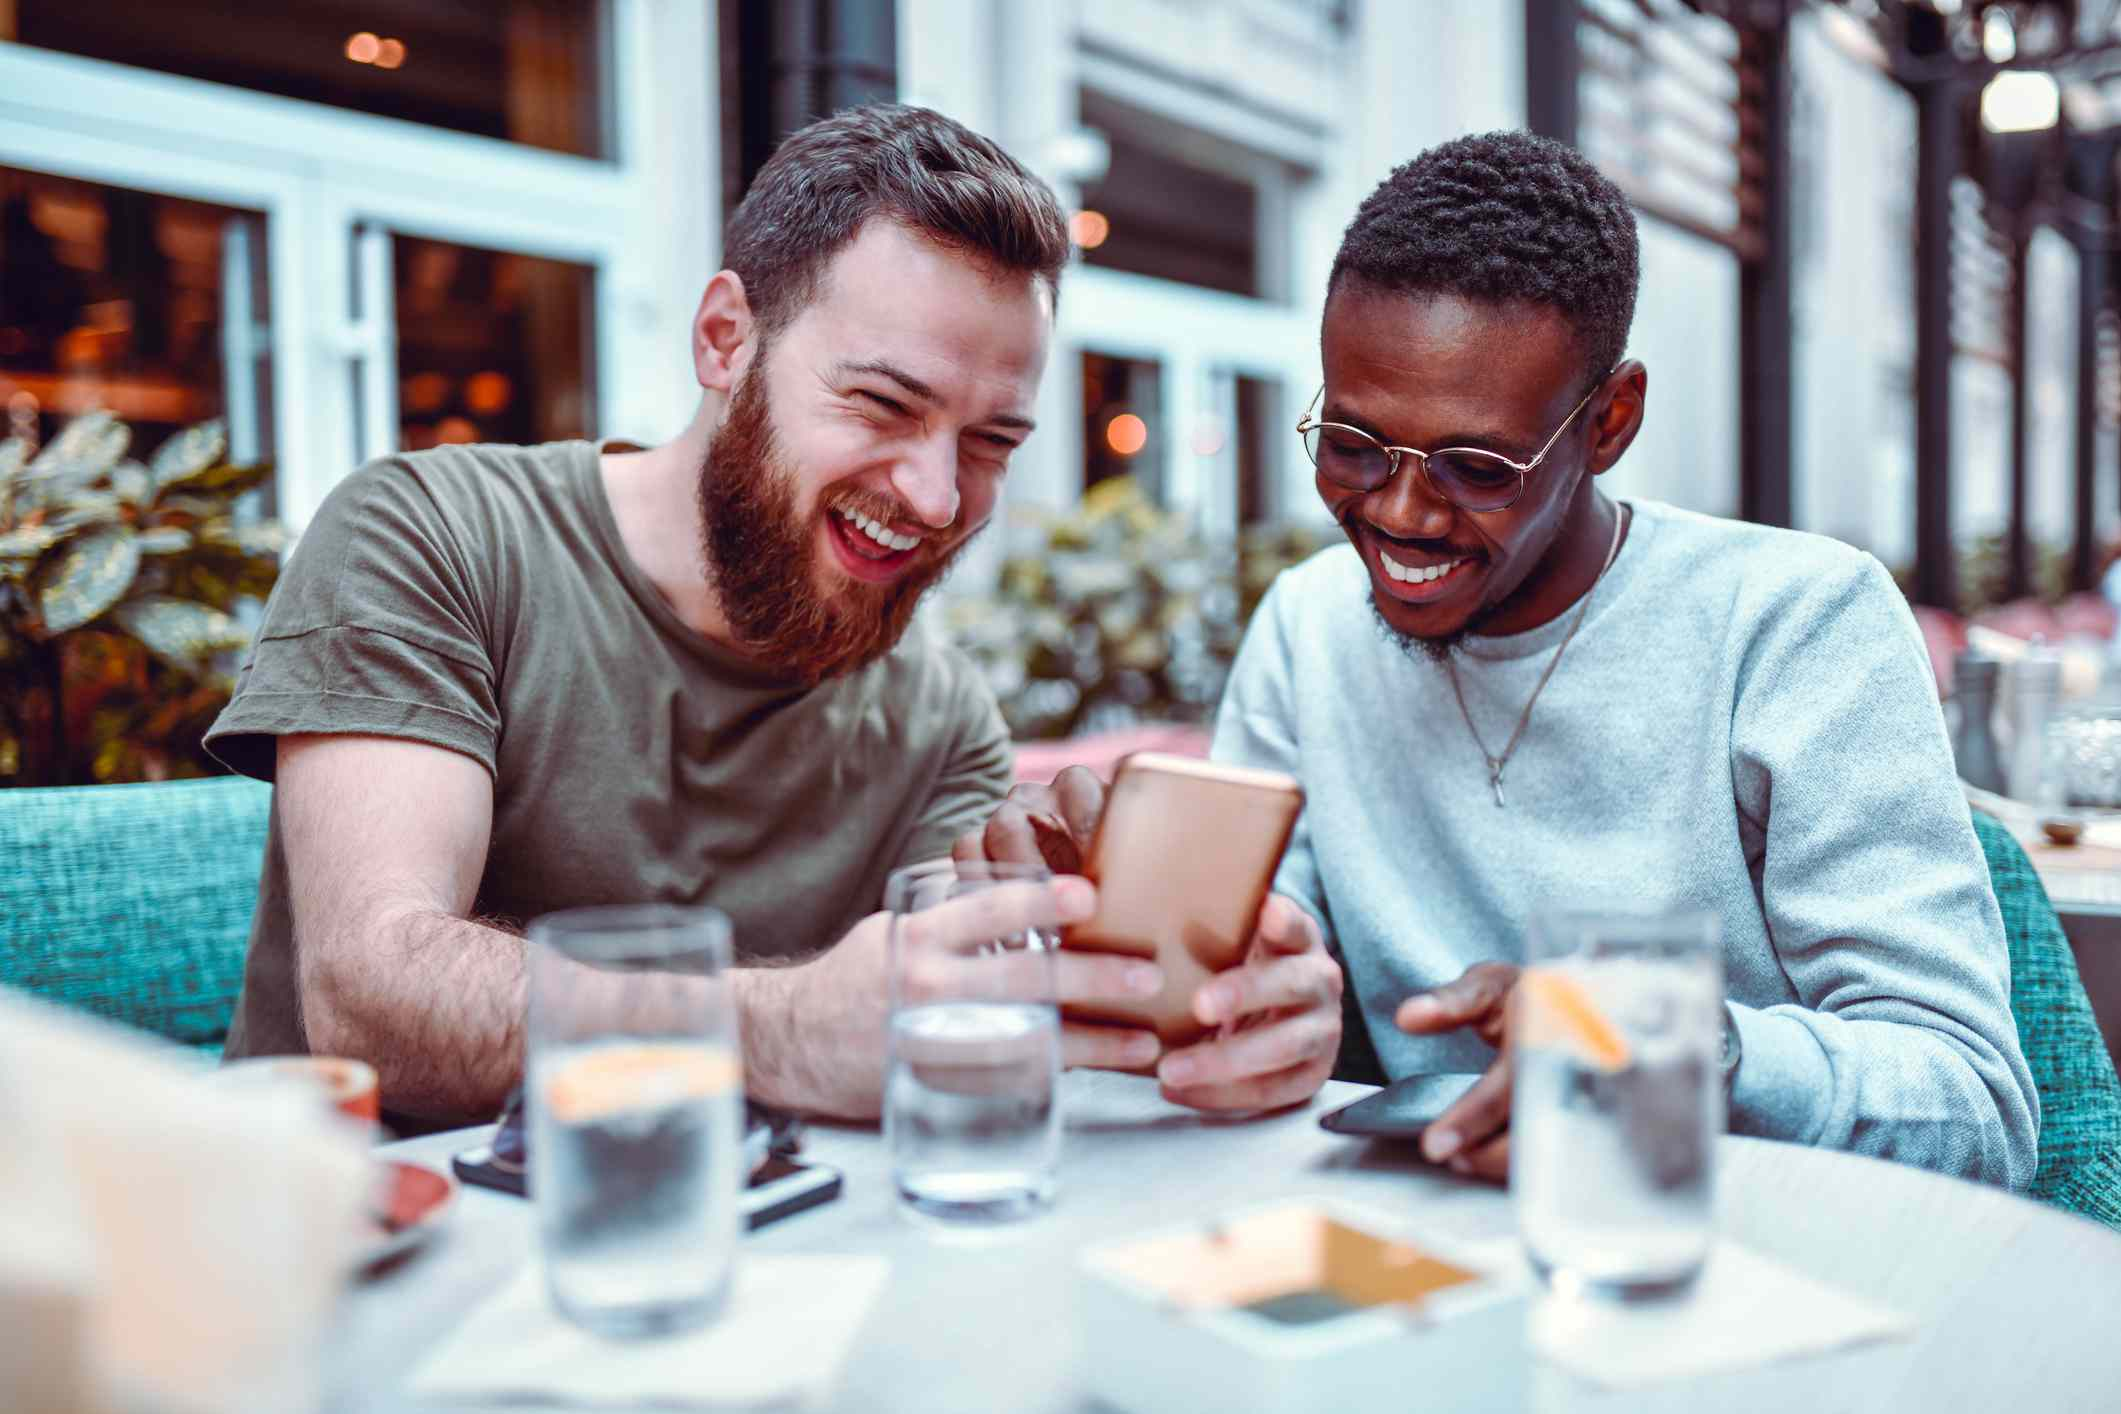 Two male friends laughing while looking at Facebook on an iPhone at a cafe